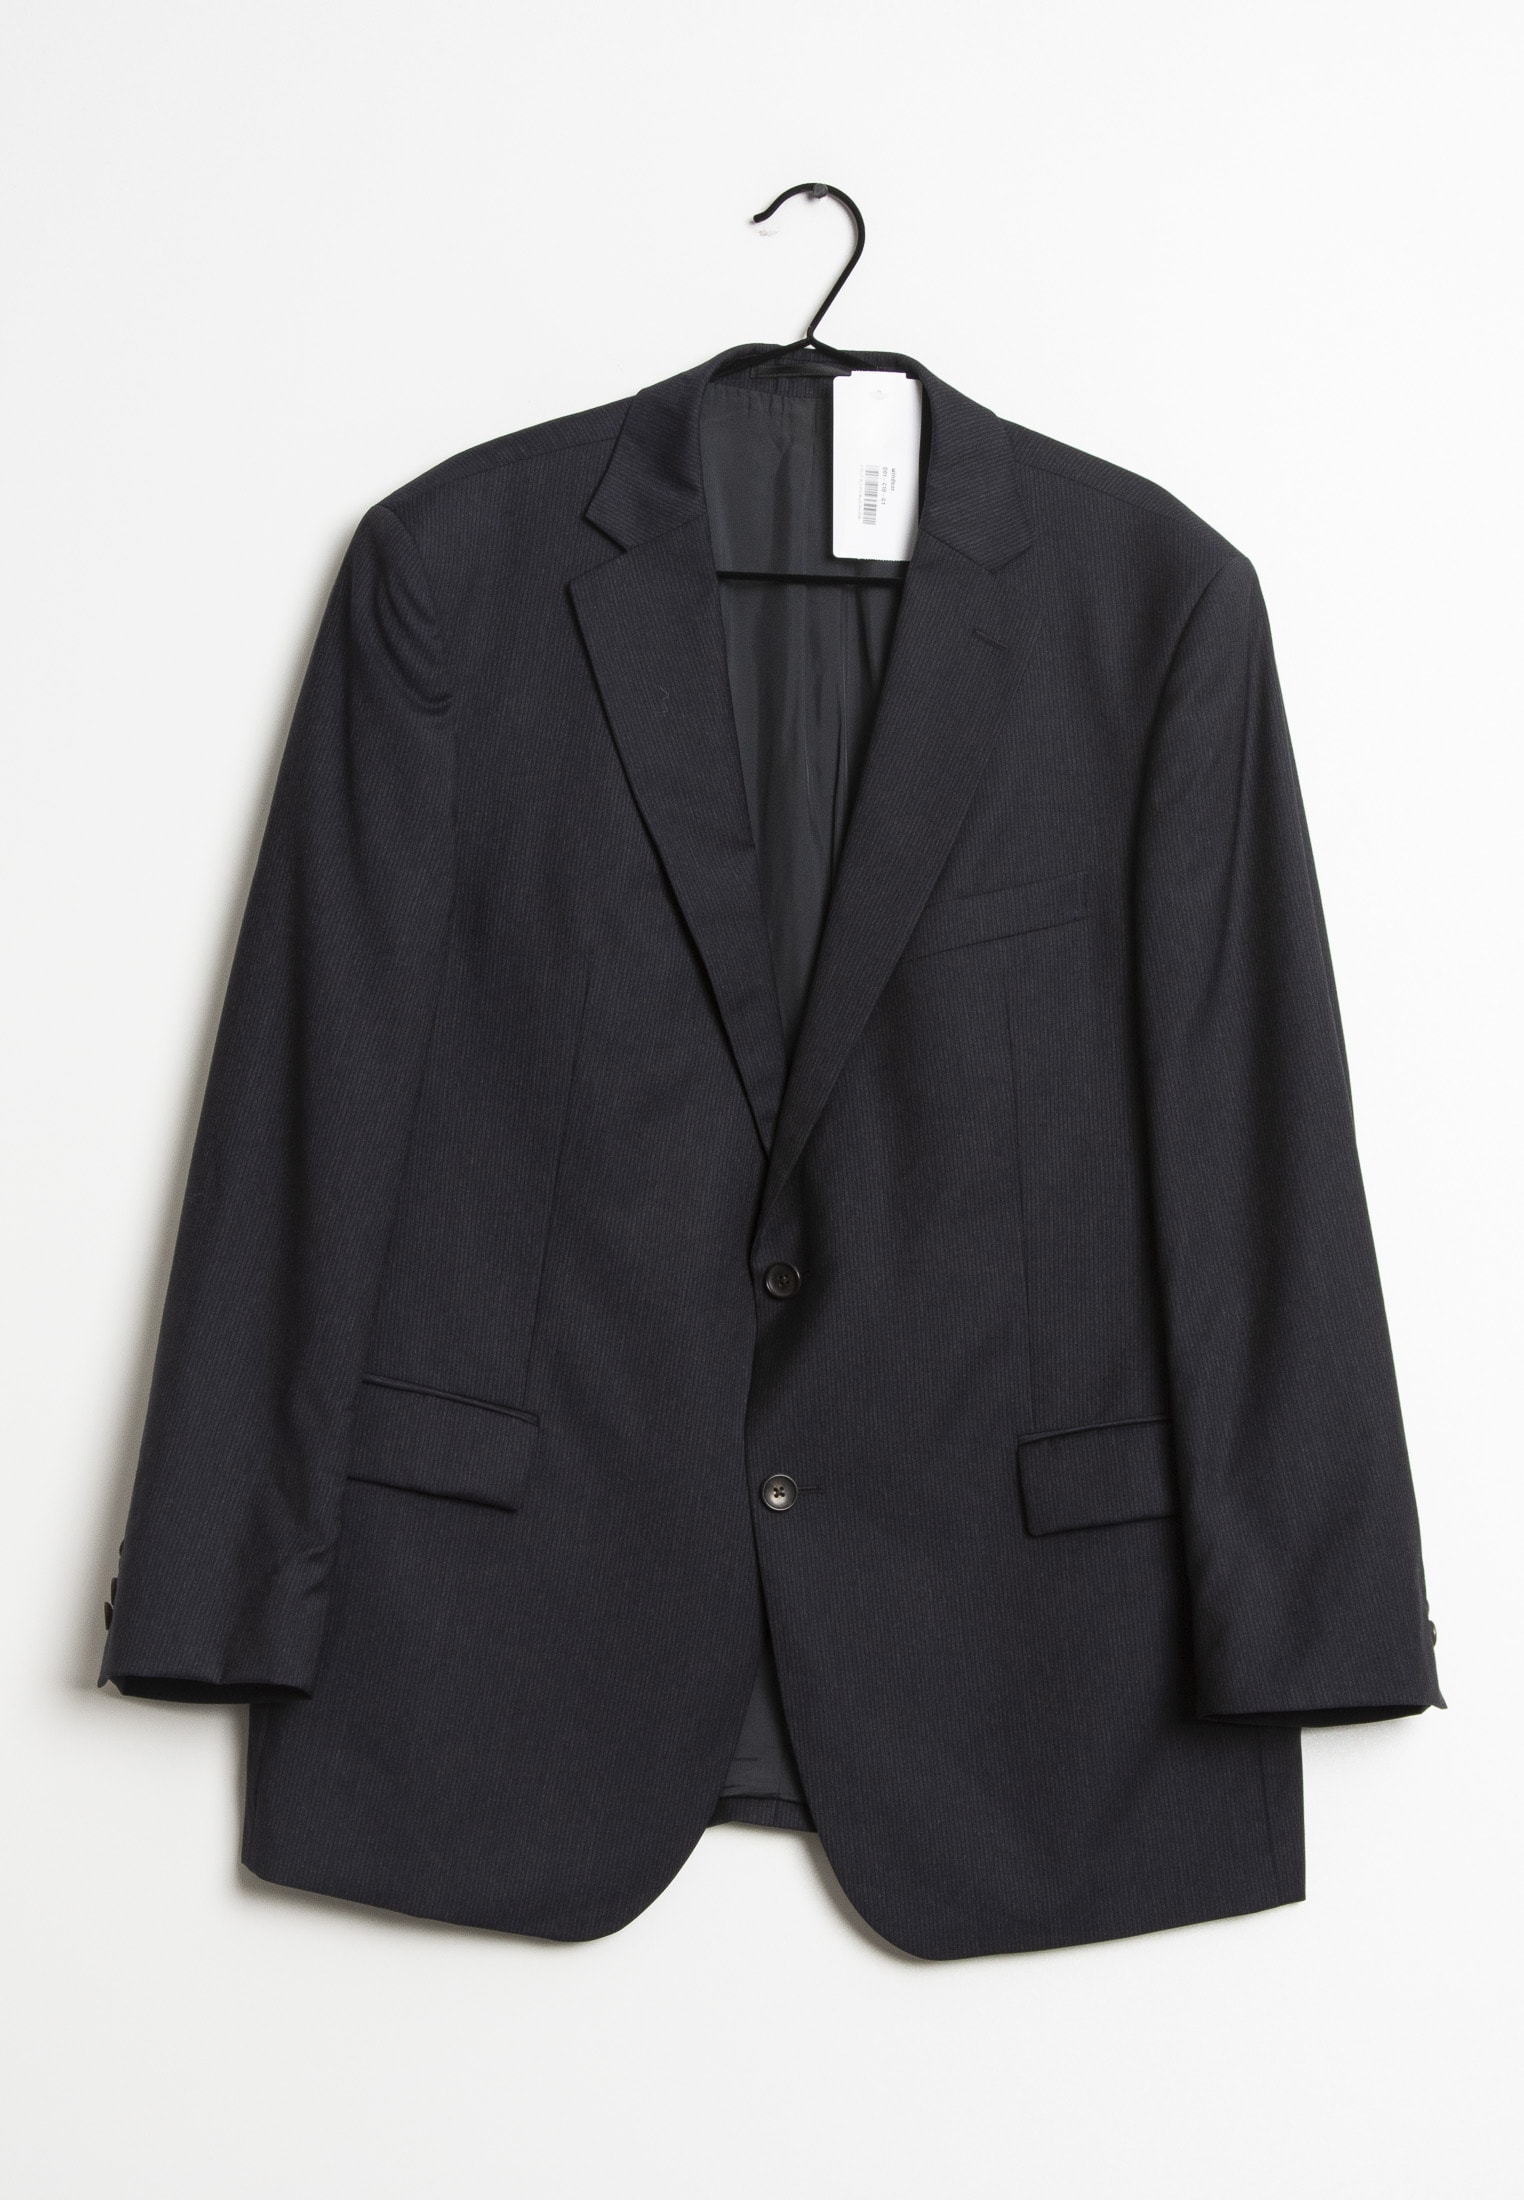 Windsor. blazer, blå, 54